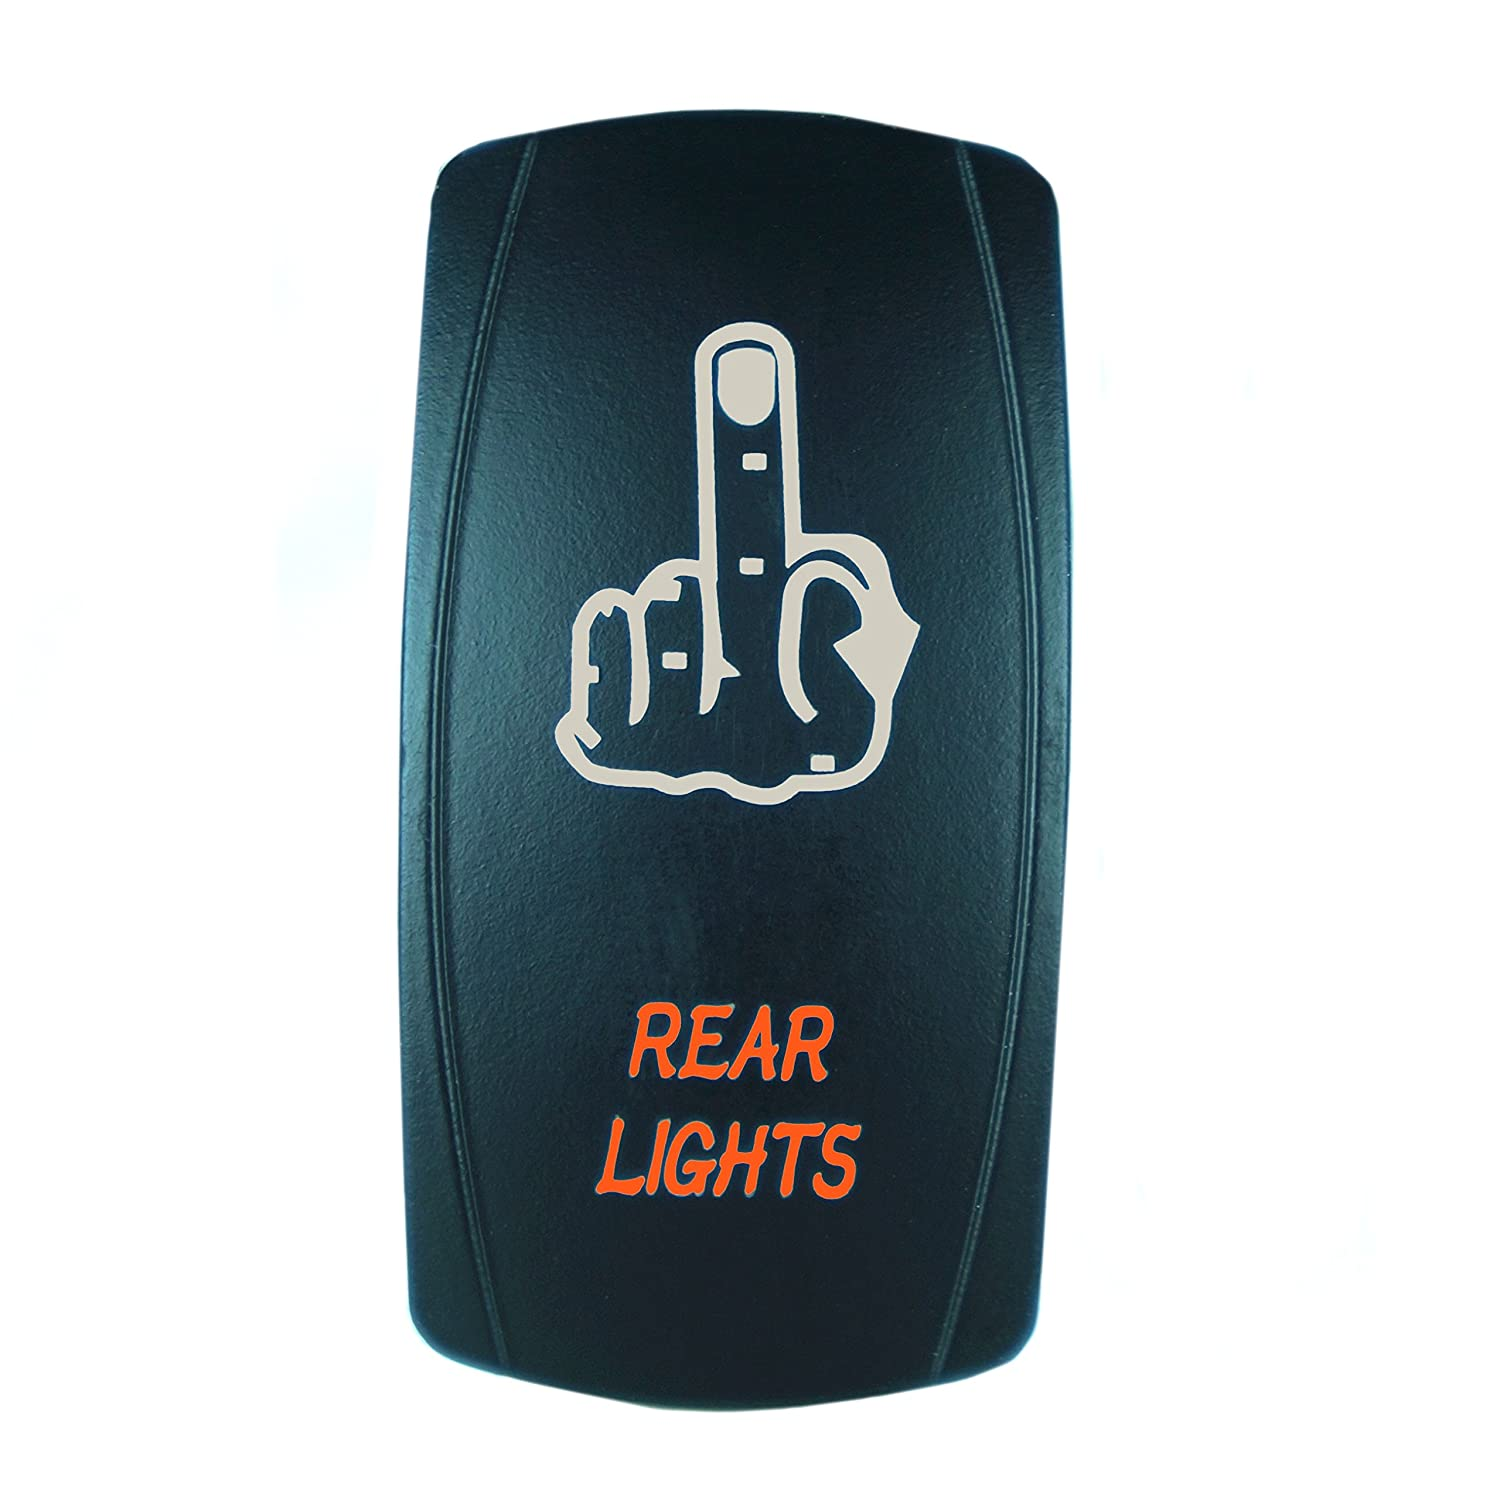 Blue Laser Rocker Switch Backlit REAR LIGHTS 12V Bright Light Powersports